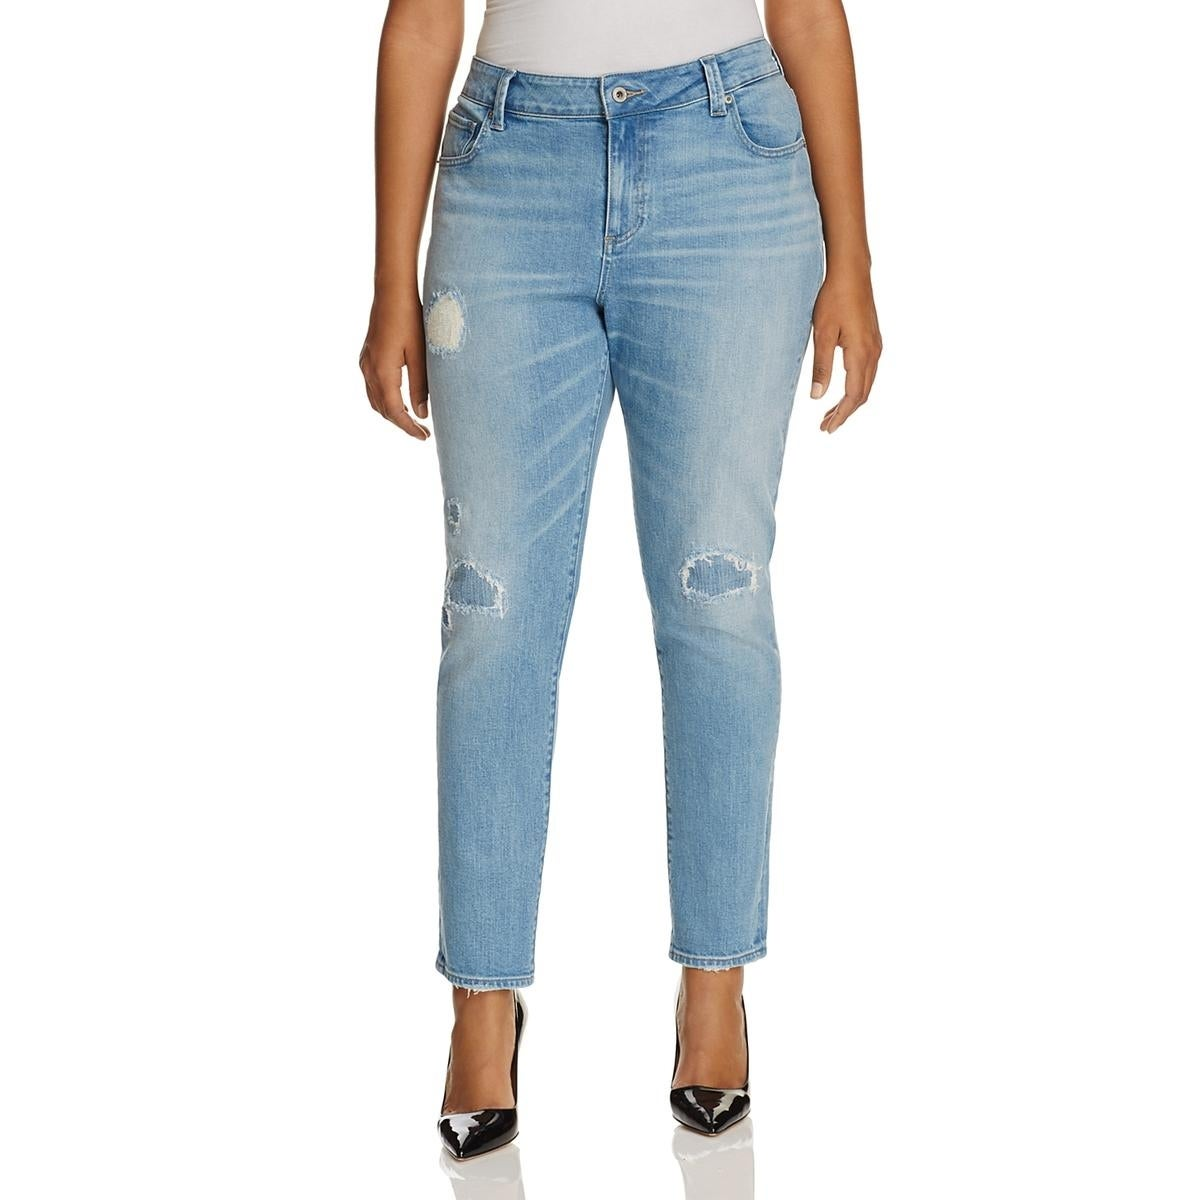 fa2cdeb4dd418 Shop Lucky Brand Womens Plus Ginger Skinny Jeans Destroyed Mid-Rise - Free  Shipping On Orders Over  45 - Overstock - 19436889